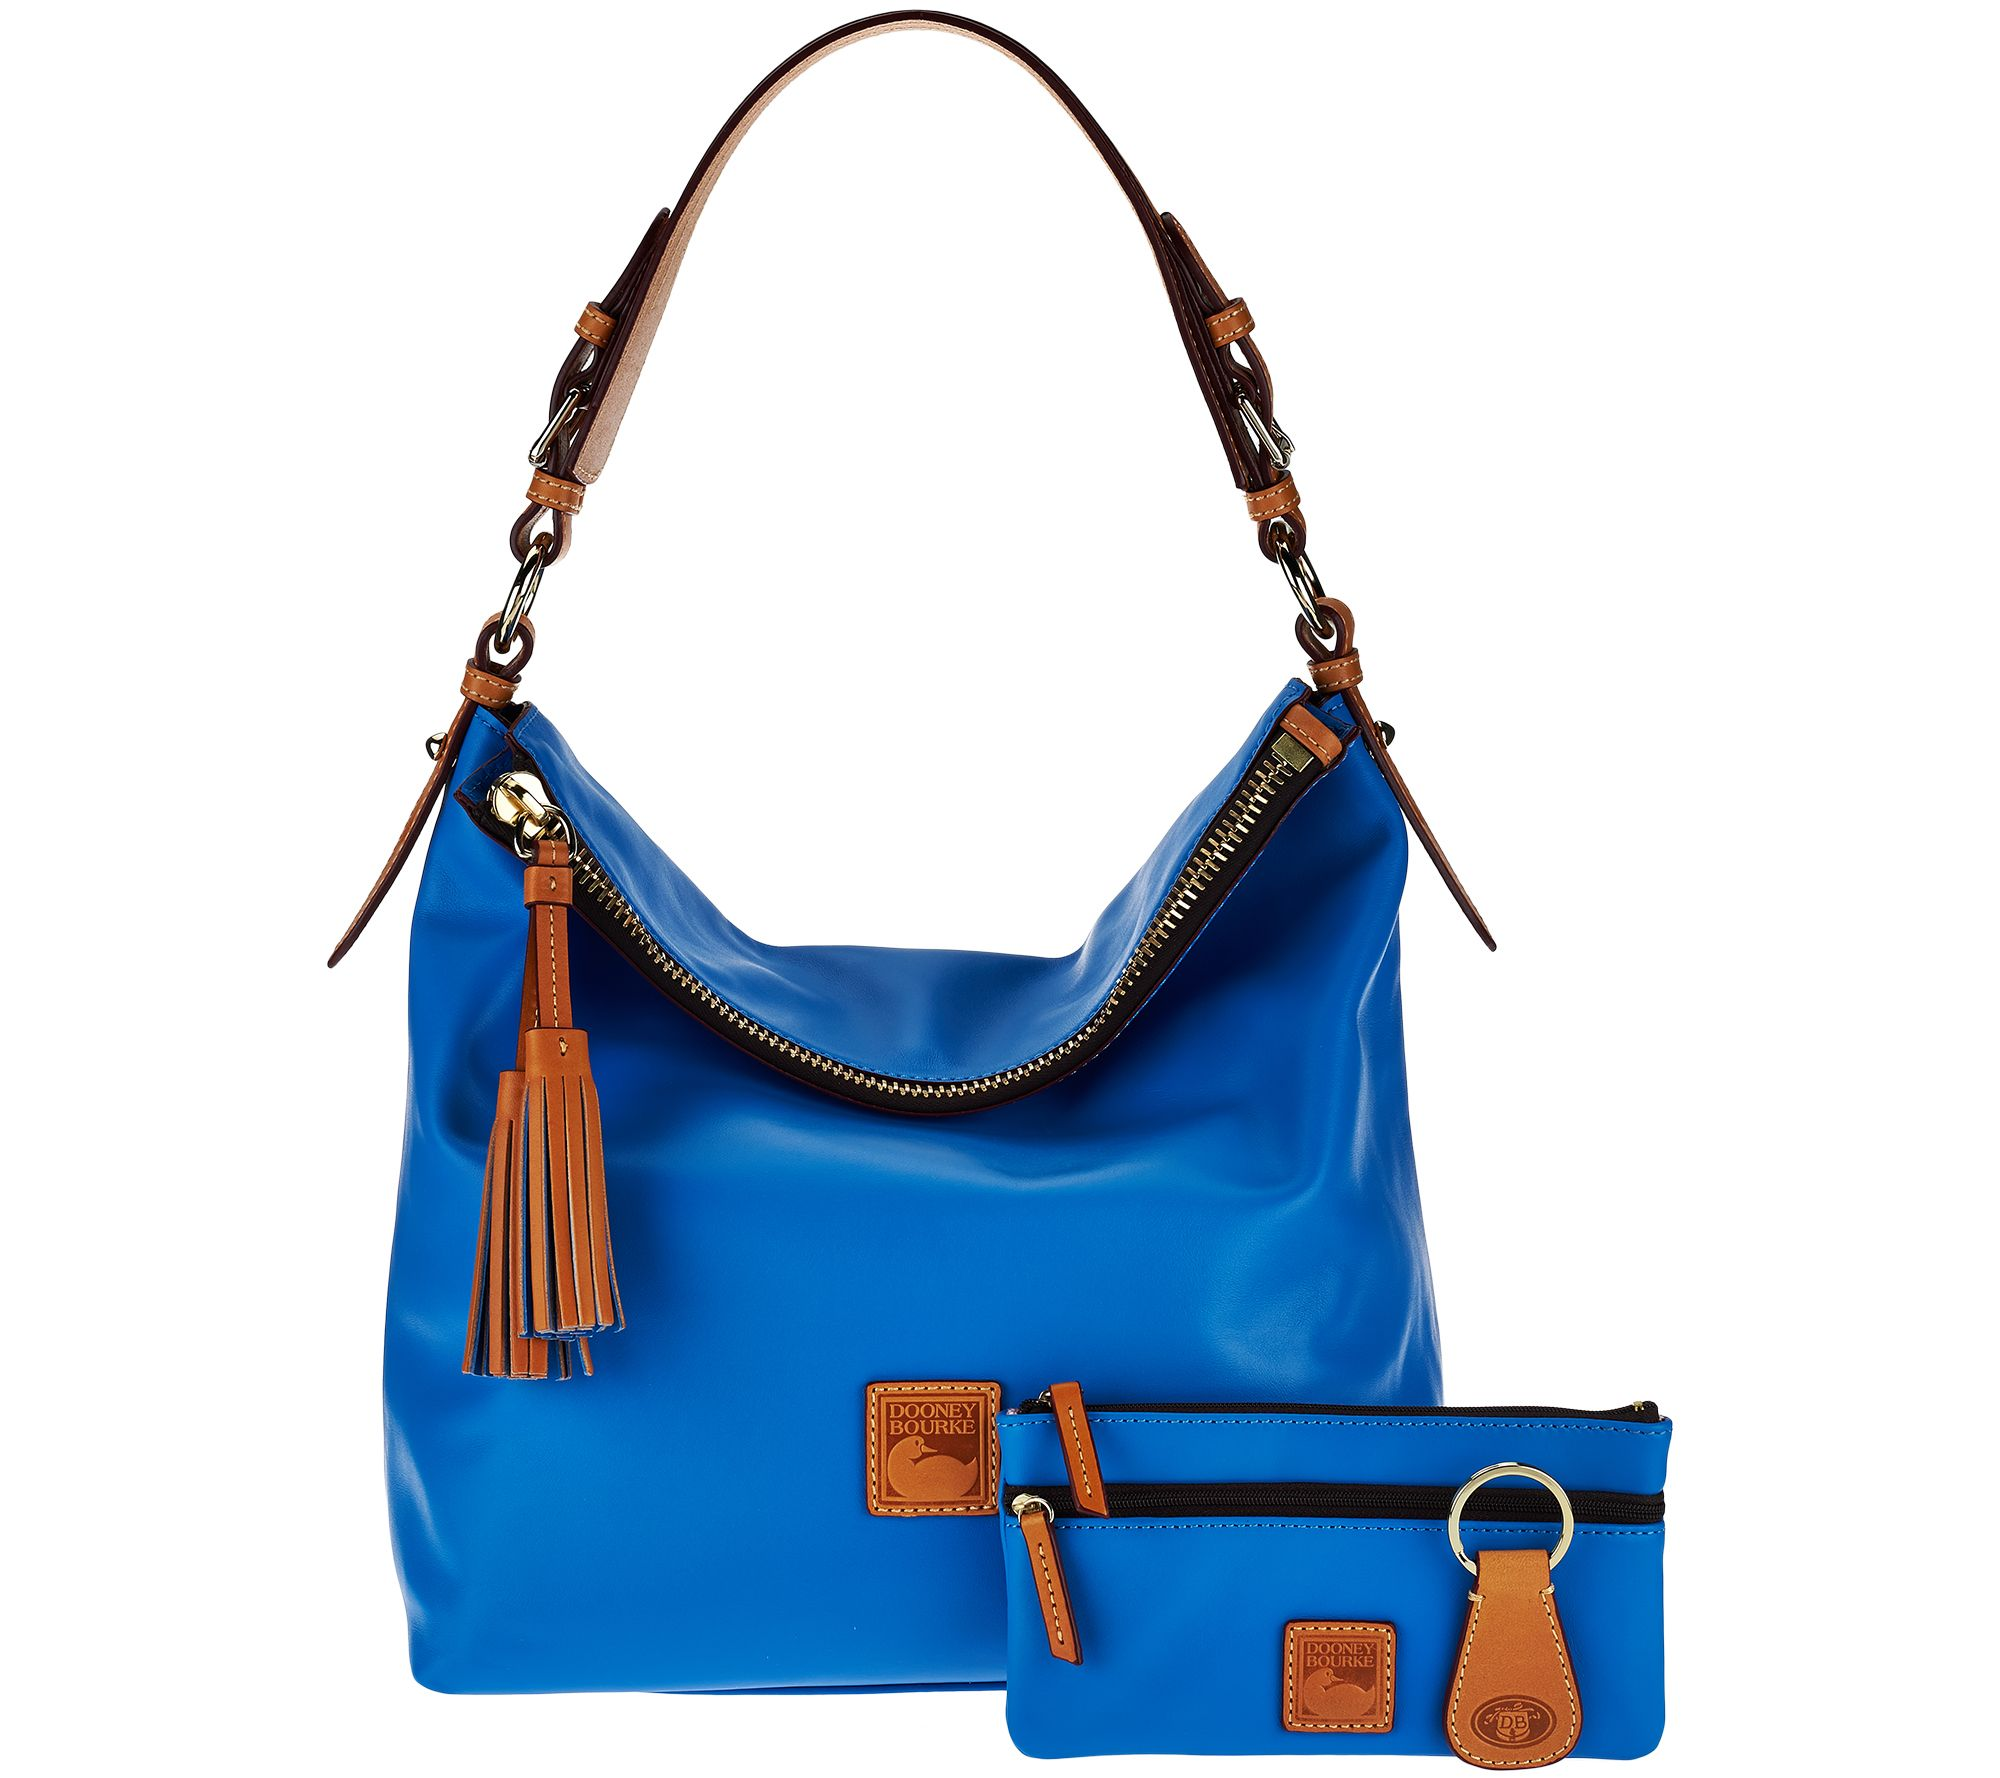 0c227fbb99a Dooney   Bourke Smooth Leather Hobo with Accessories - Page 1 — QVC.com